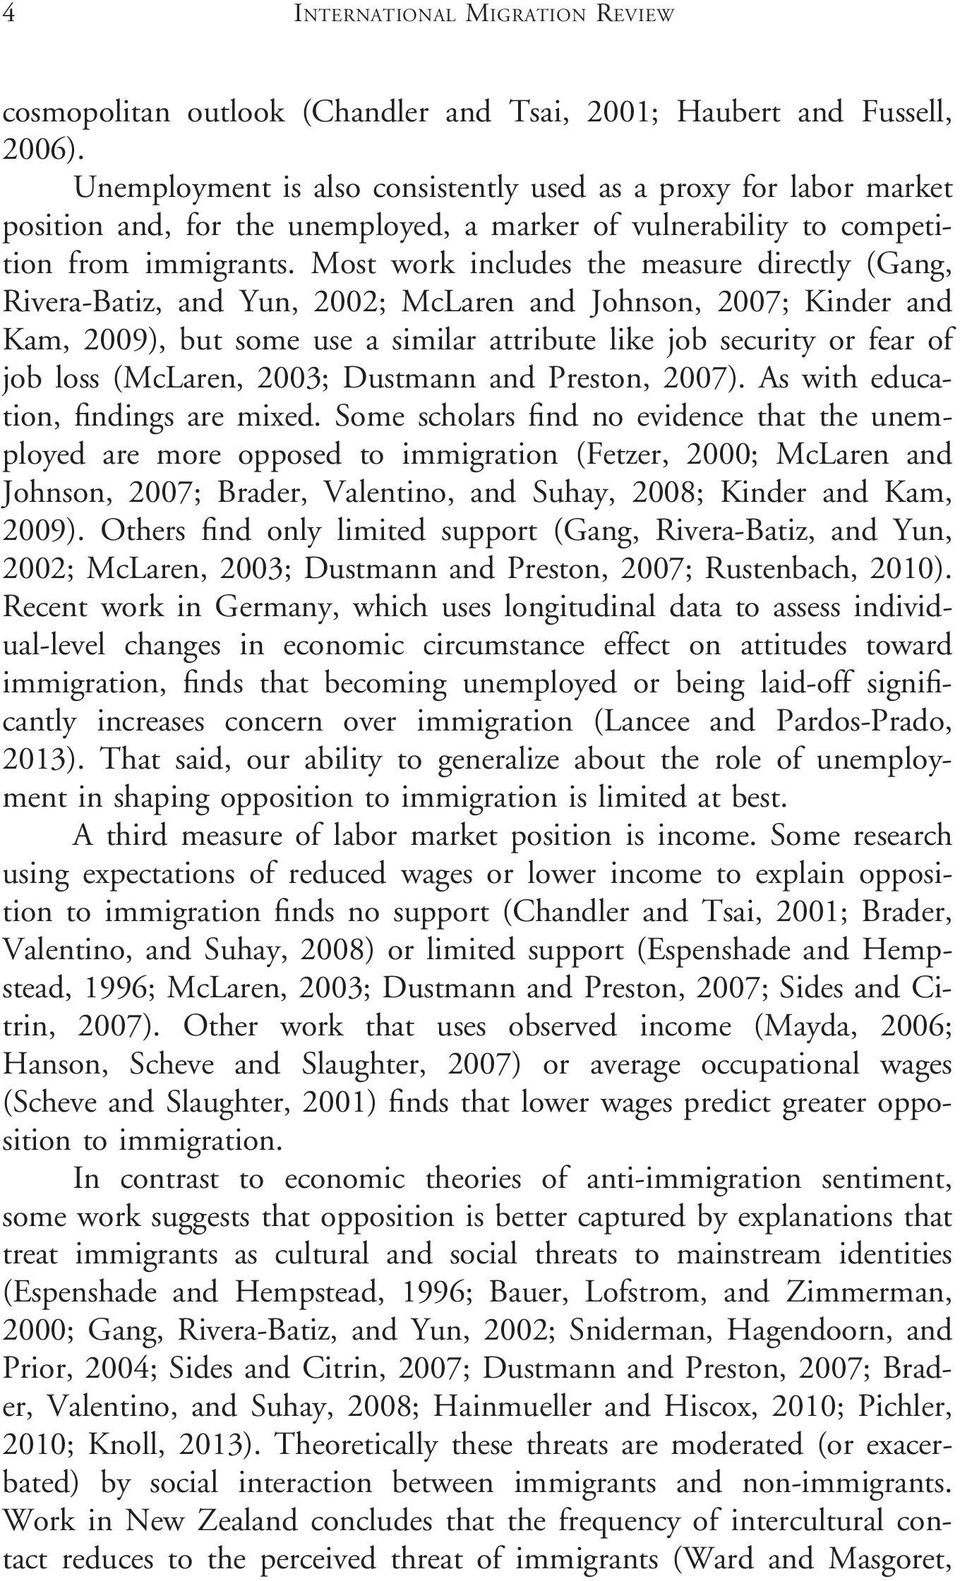 Most work includes the measure directly (Gang, Rivera-Batiz, and Yun, 2002; McLaren and Johnson, 2007; Kinder and Kam, 2009), but some use a similar attribute like job security or fear of job loss